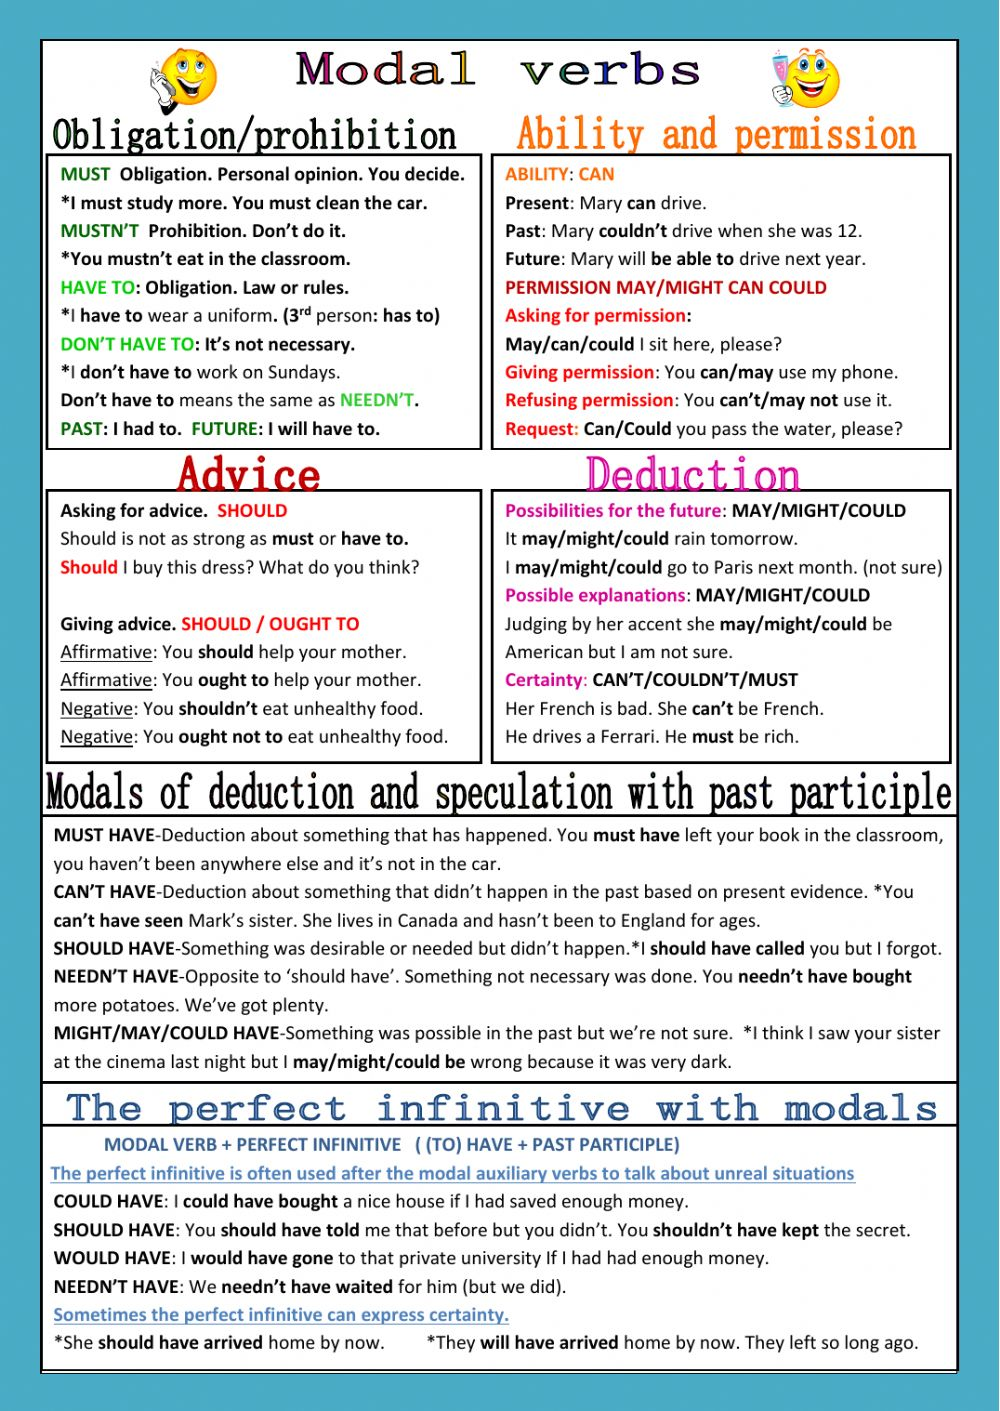 Modal verbs - Upper intermediate level - Interactive worksheet